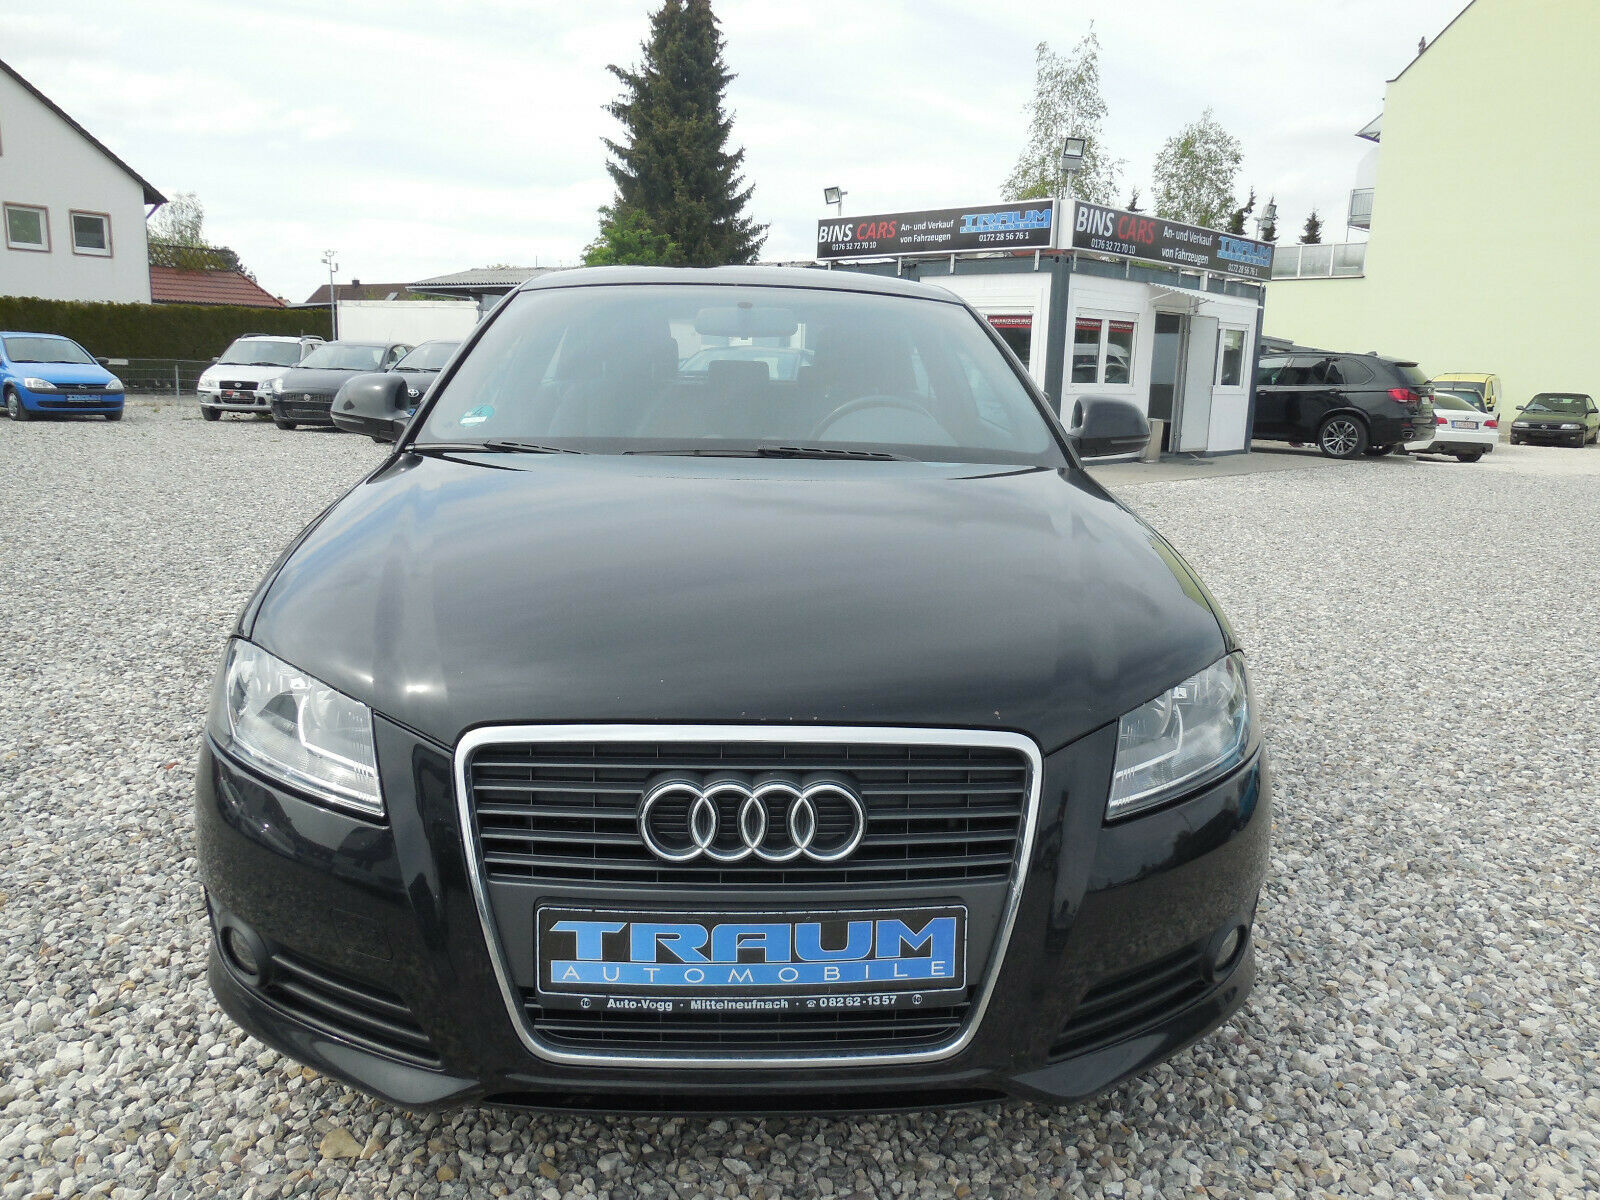 AUDI A3 1.4 TFSI Attraction*Klimaautomatik*Shz*2Hand*